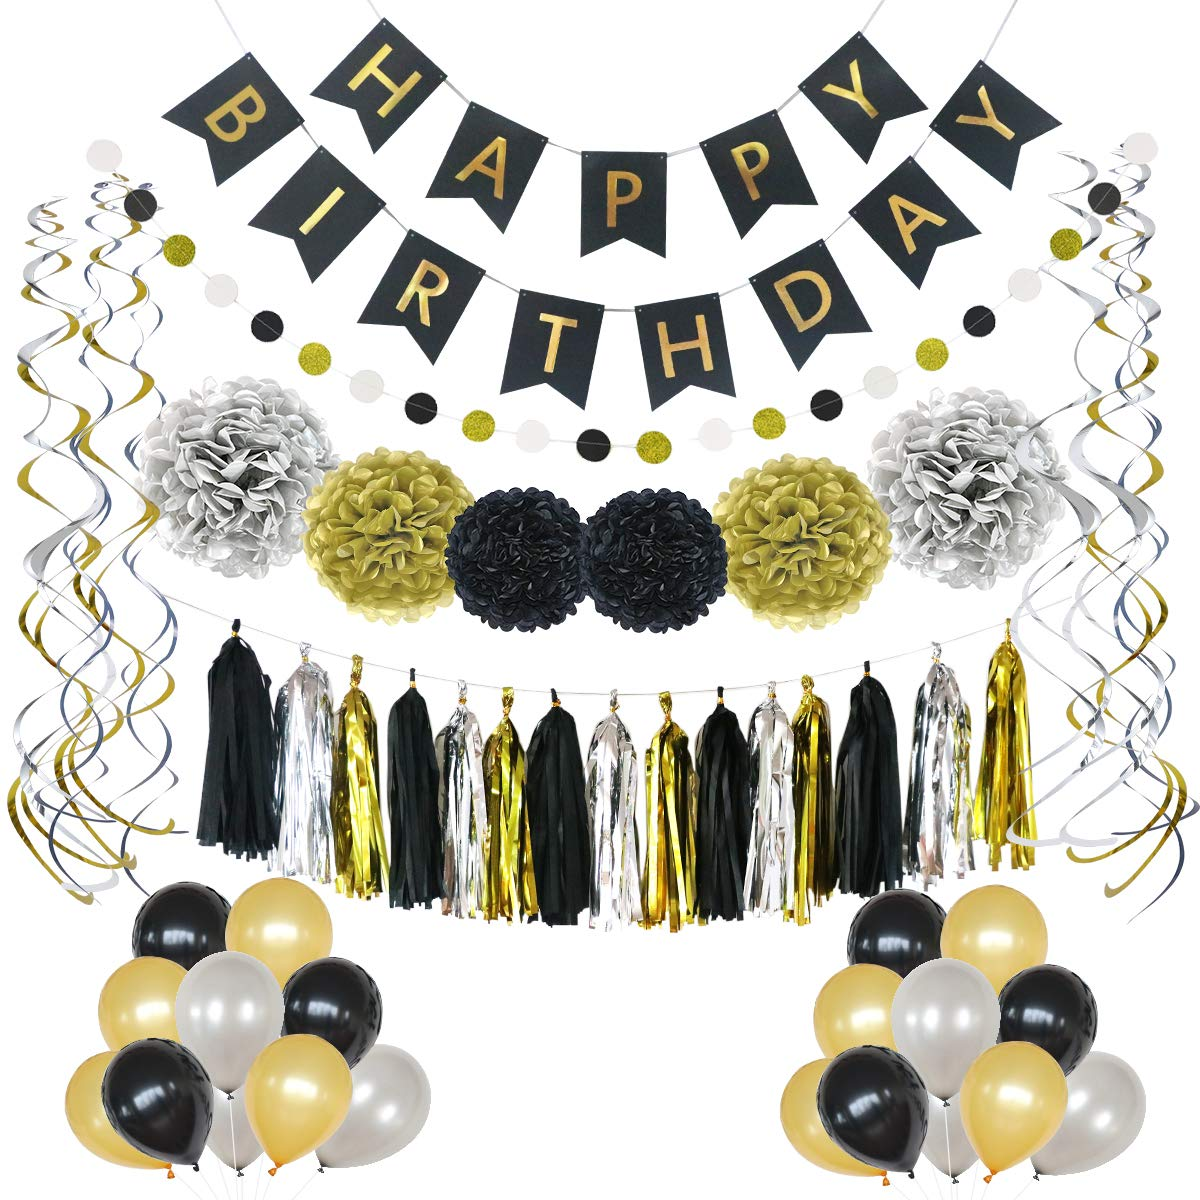 LITAUS Birthday Decorations, Black and Gold Party Supplies, Serves 59, Includes Happy Birthday Banner, Party Balloons, Hanging Swirls, Garland, Tassels, Paper Flowers for Parties, Baby Shower